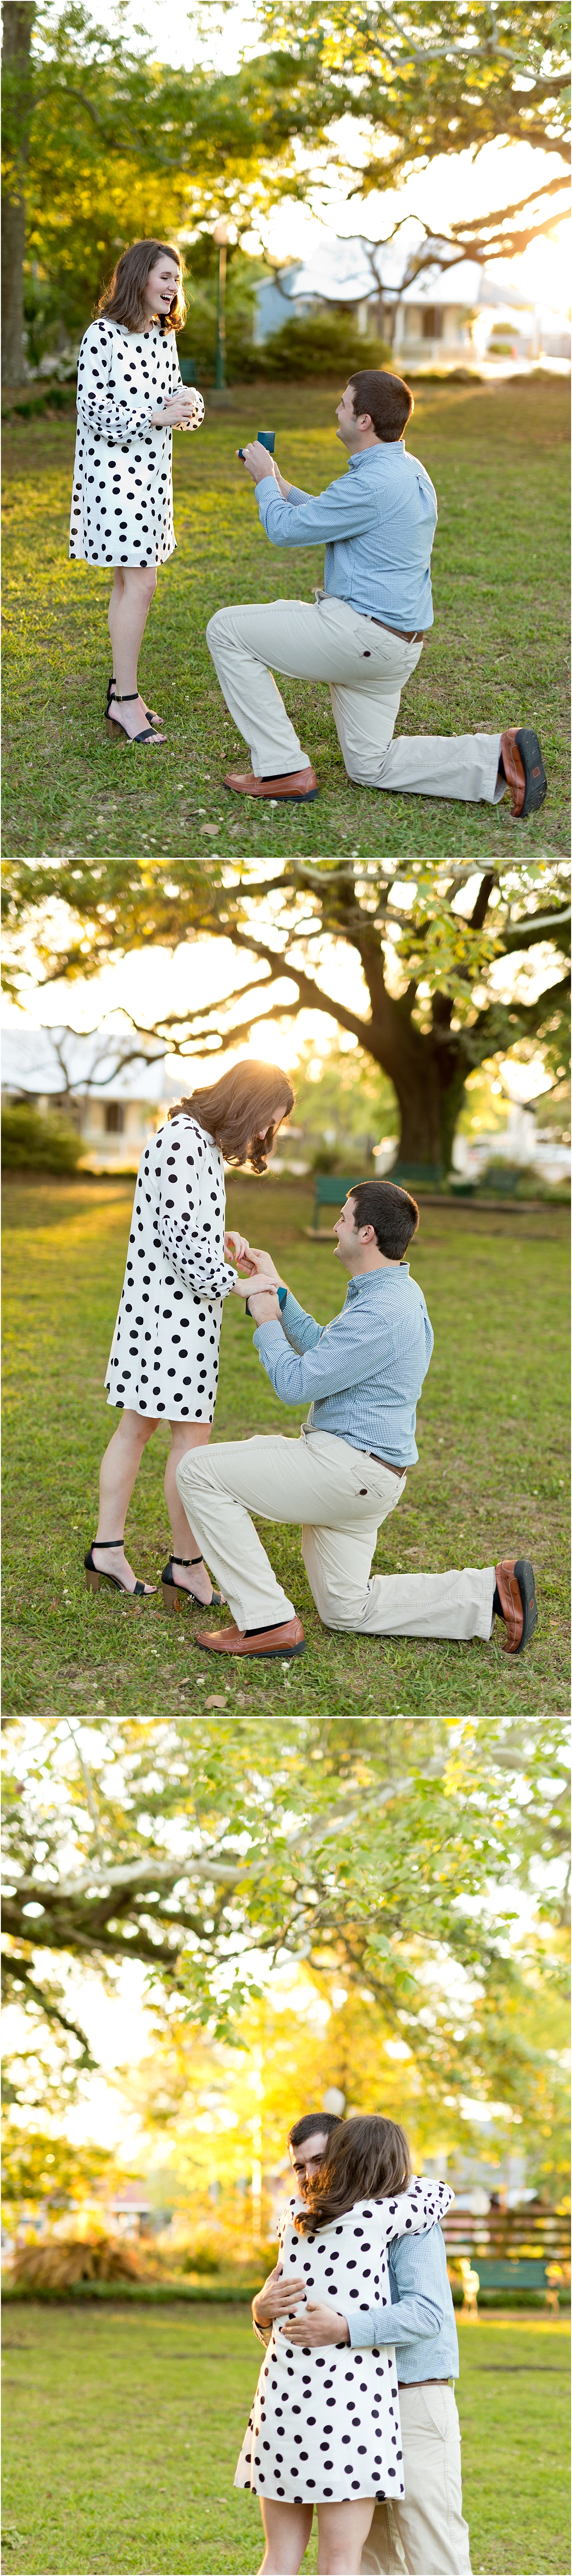 Proposal at Marshall park in Ocean Springs, Mississippi - Ocean Springs wedding photographer